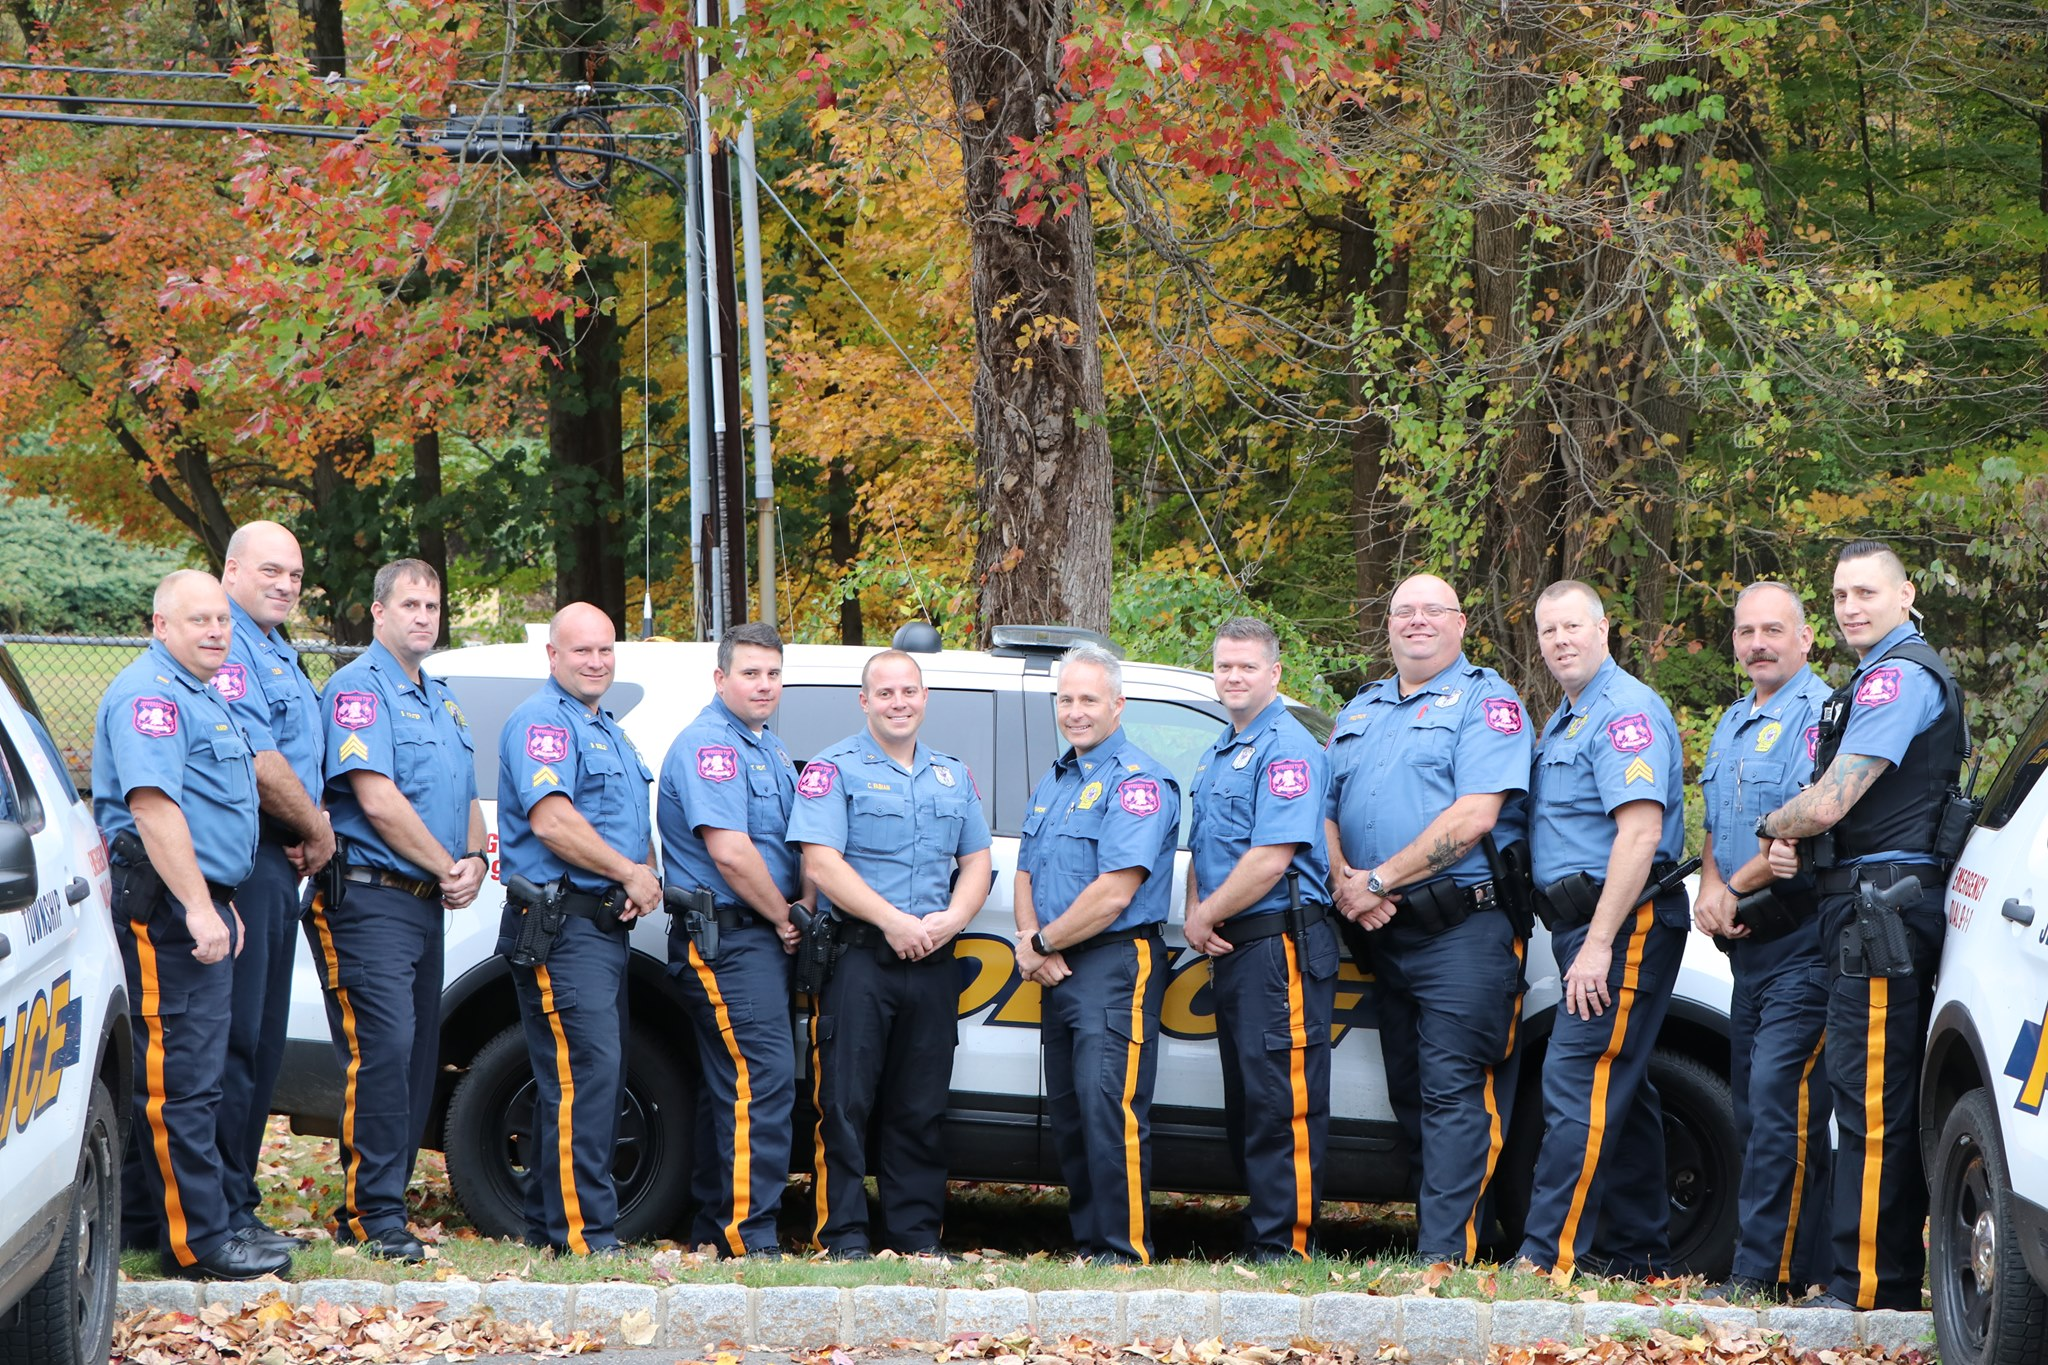 Jefferson Township Police Department No Shave November 2017